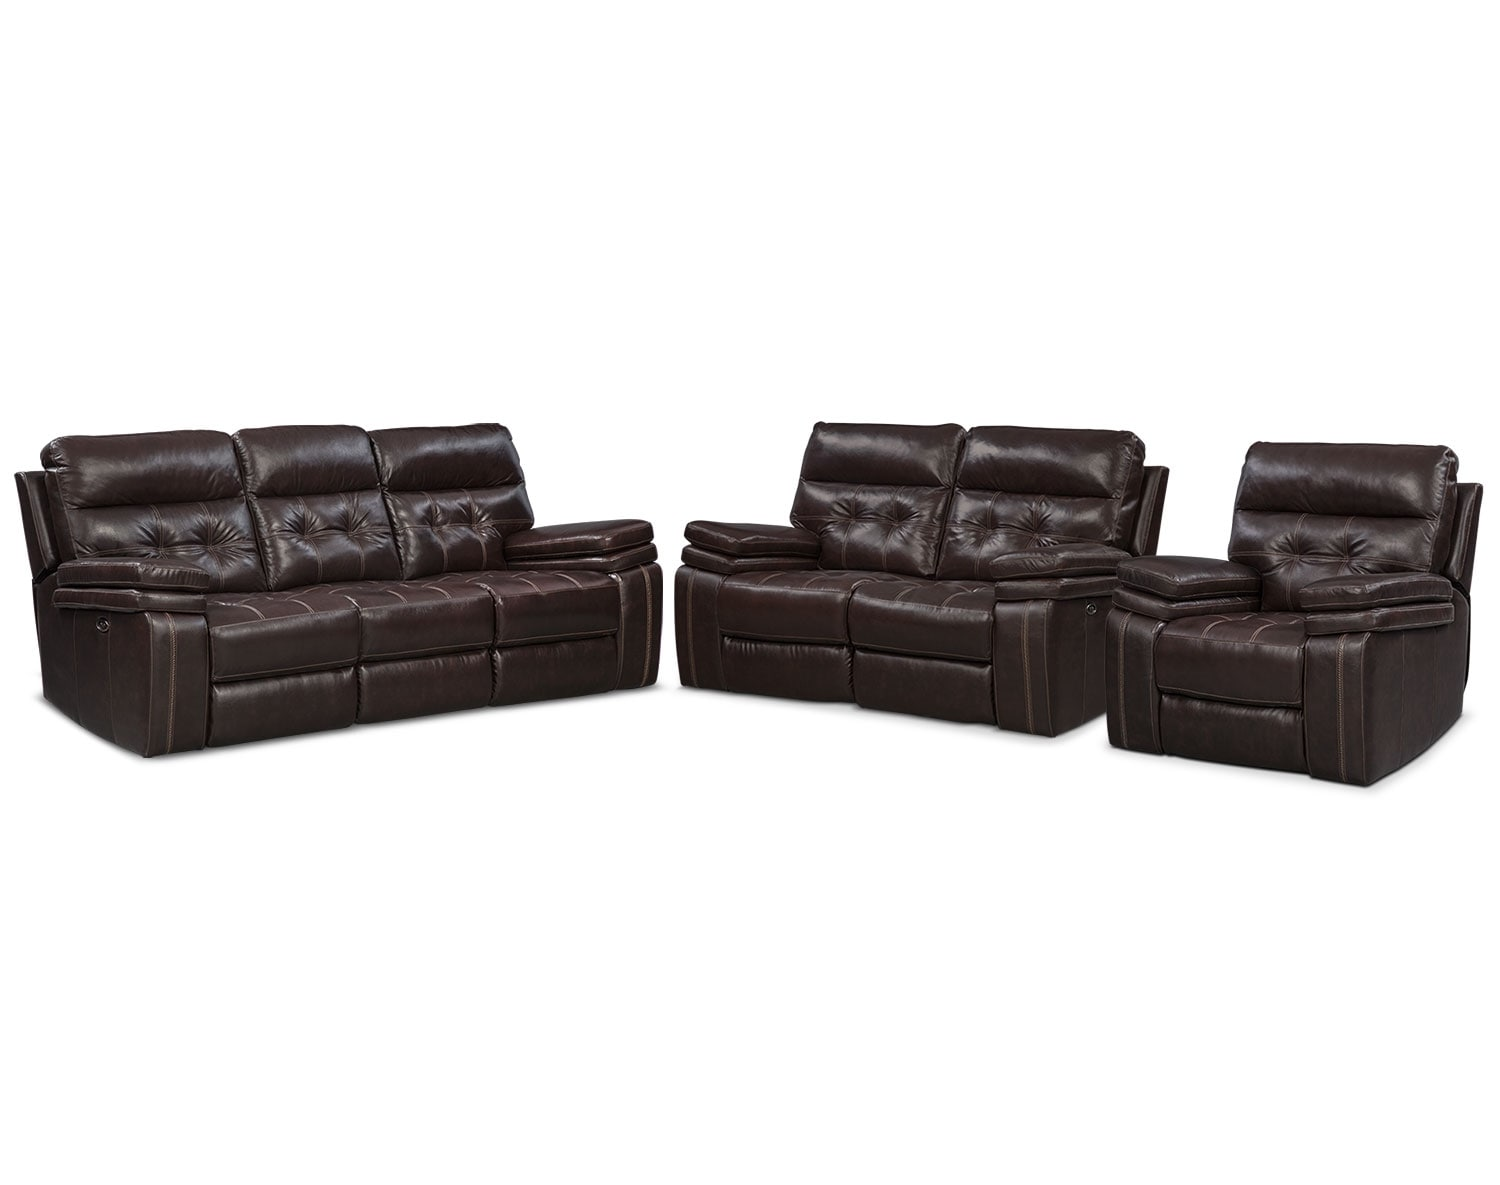 Leather Living Room Furniture American Signature Furniture ~ Payton Power Reclining Sofa